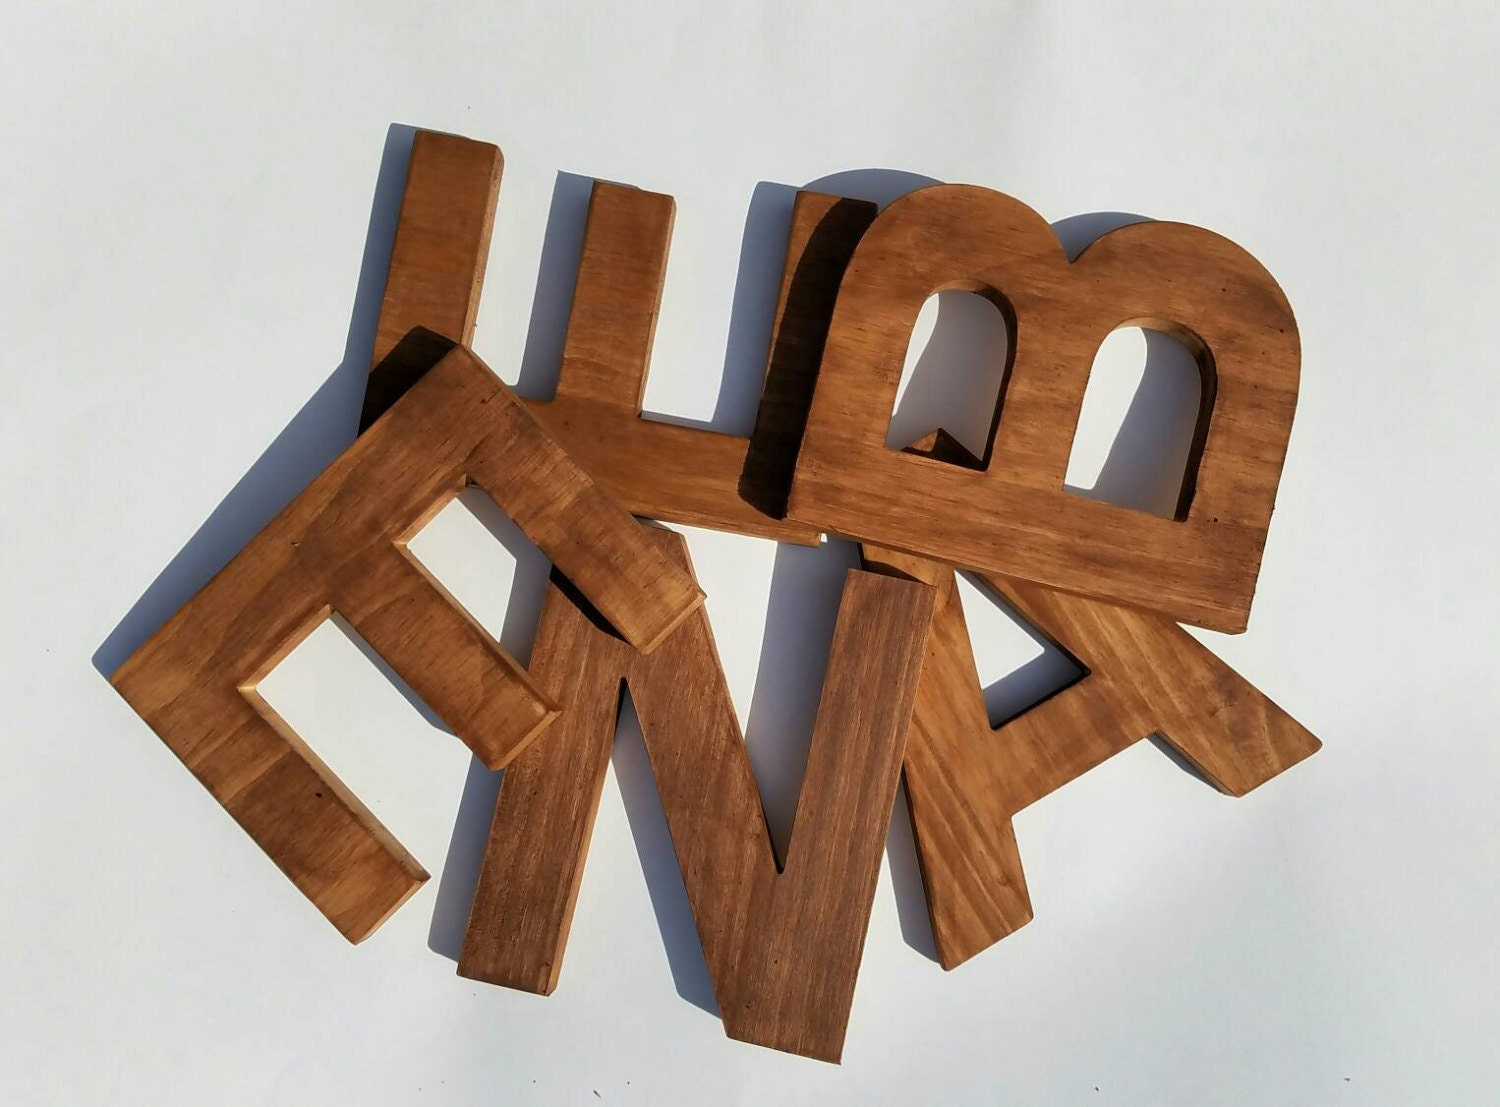 Wooden Wall Letters Wood Letter Decor